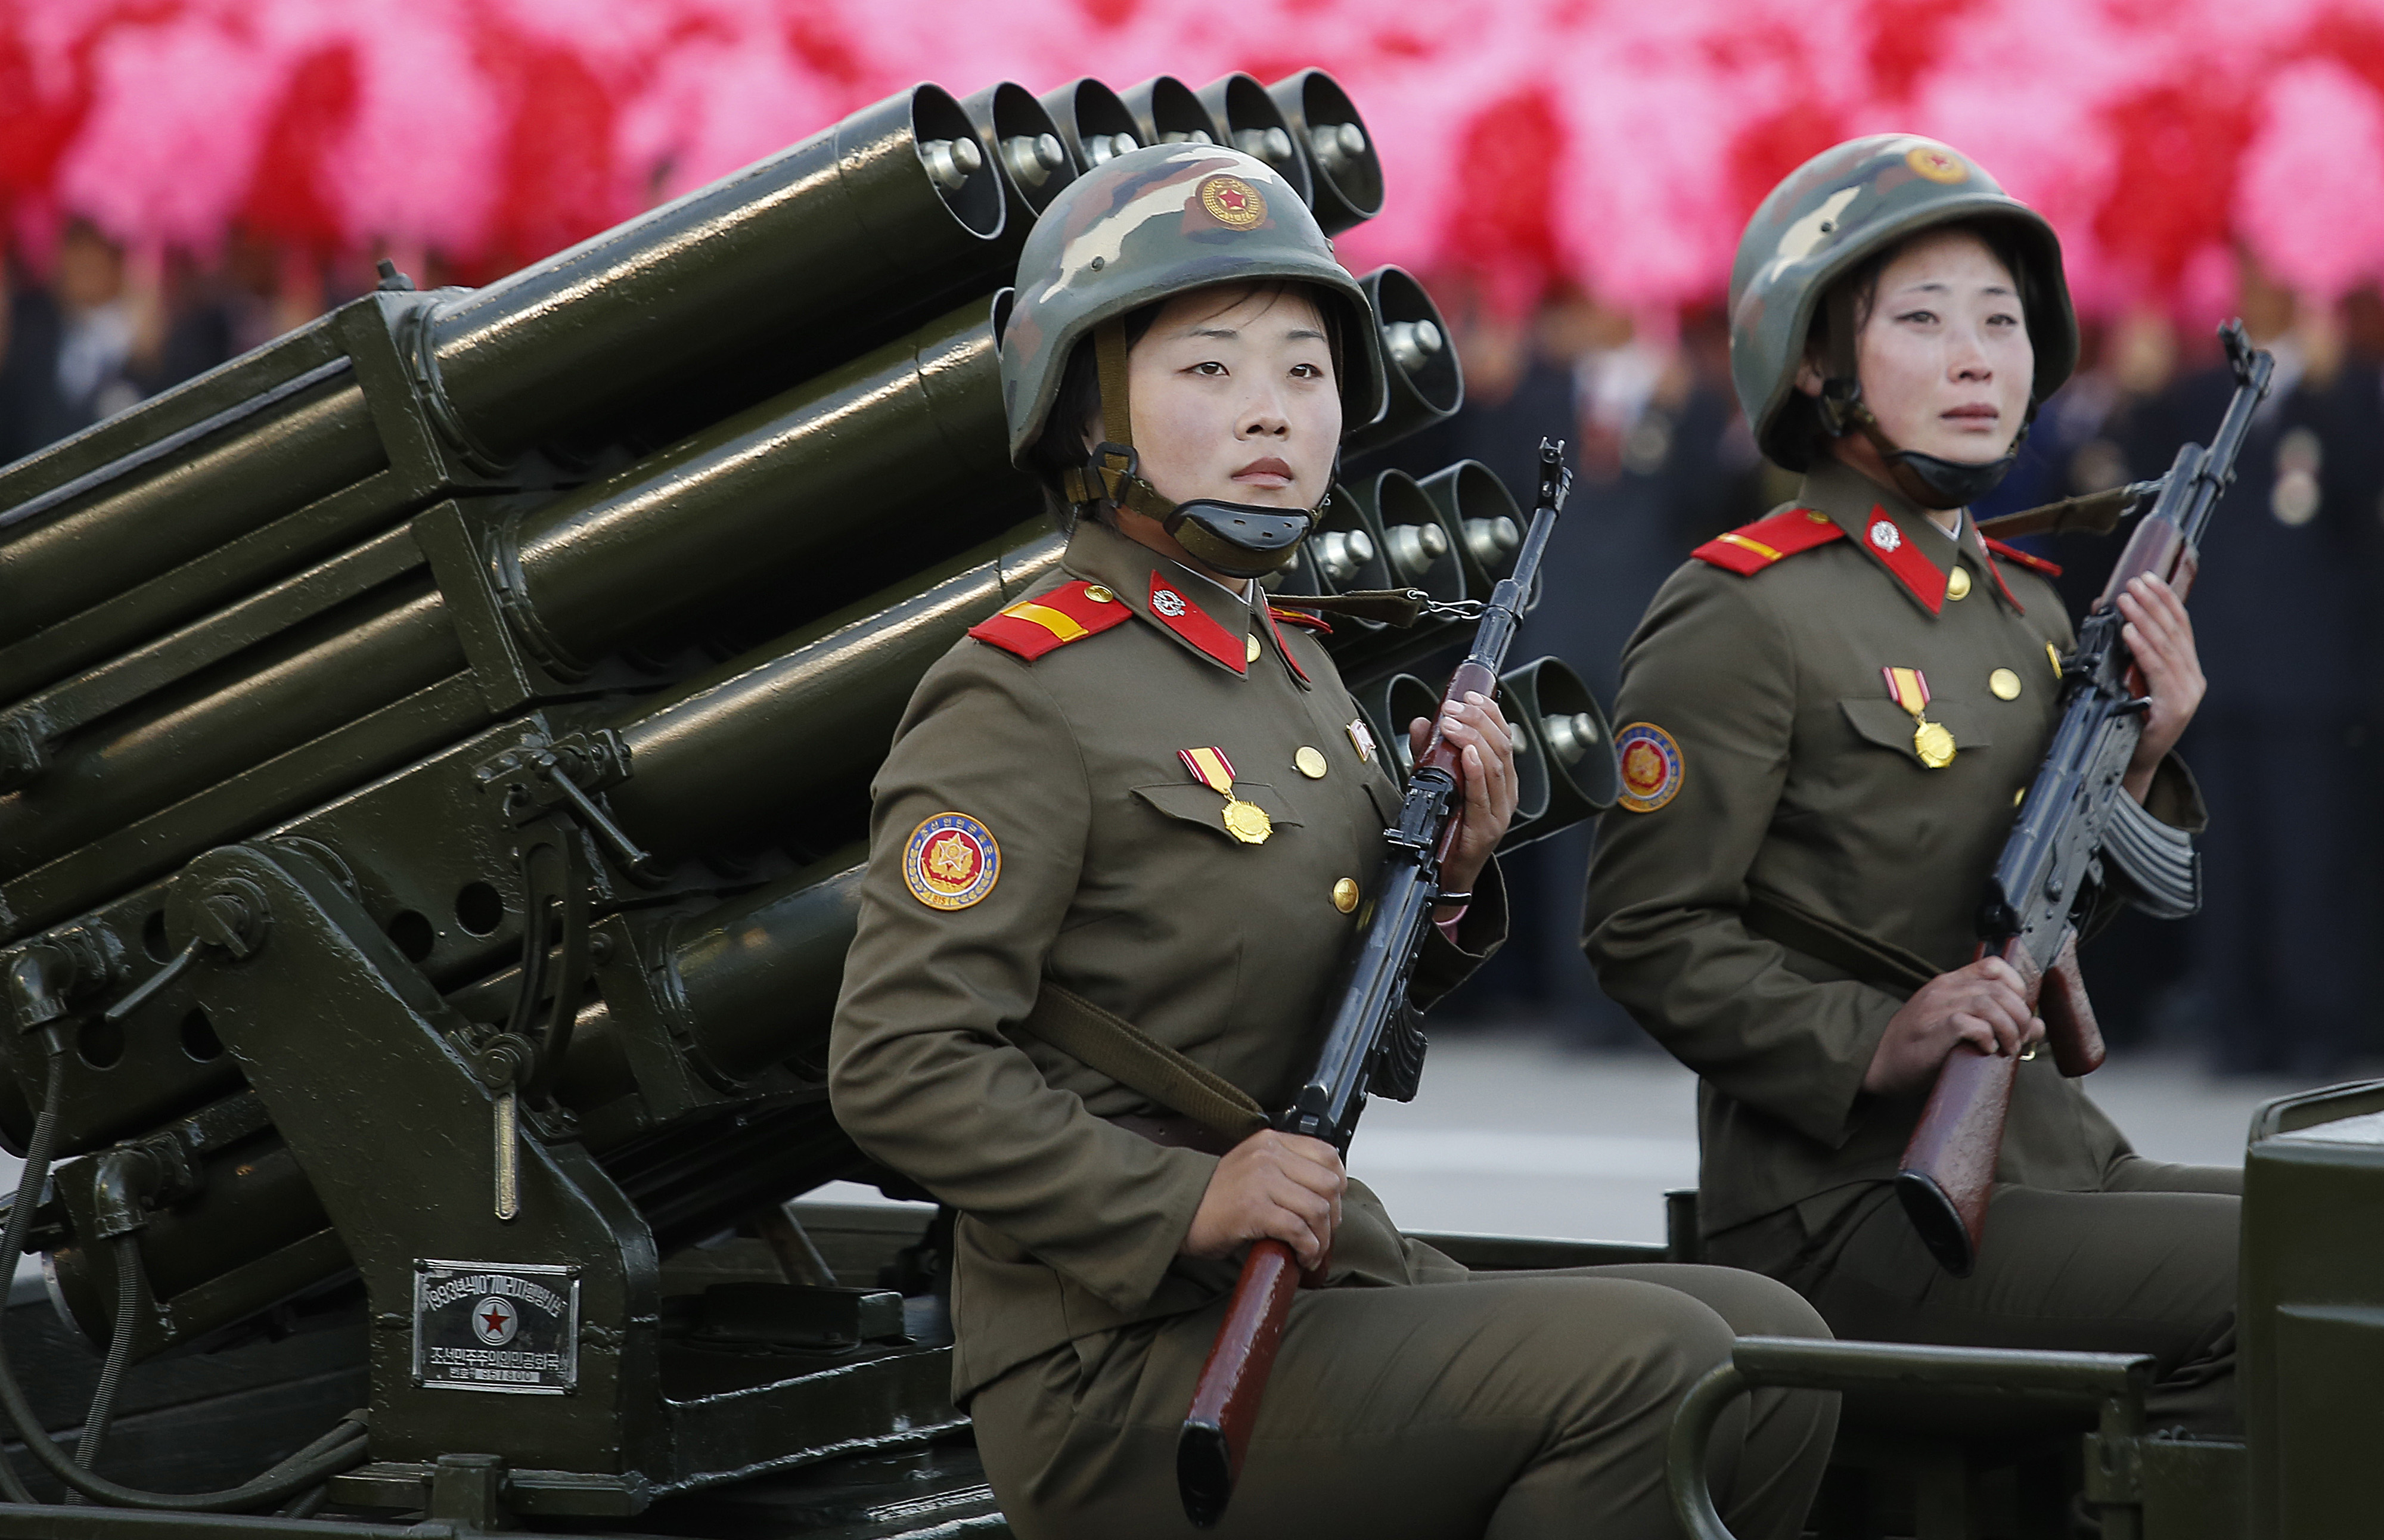 North Korean soldiers parade through Kim Il Sung Square with their missiles and rockets during a mass military parade, on Oct. 10, 2015, in Pyongyang, North Korea.